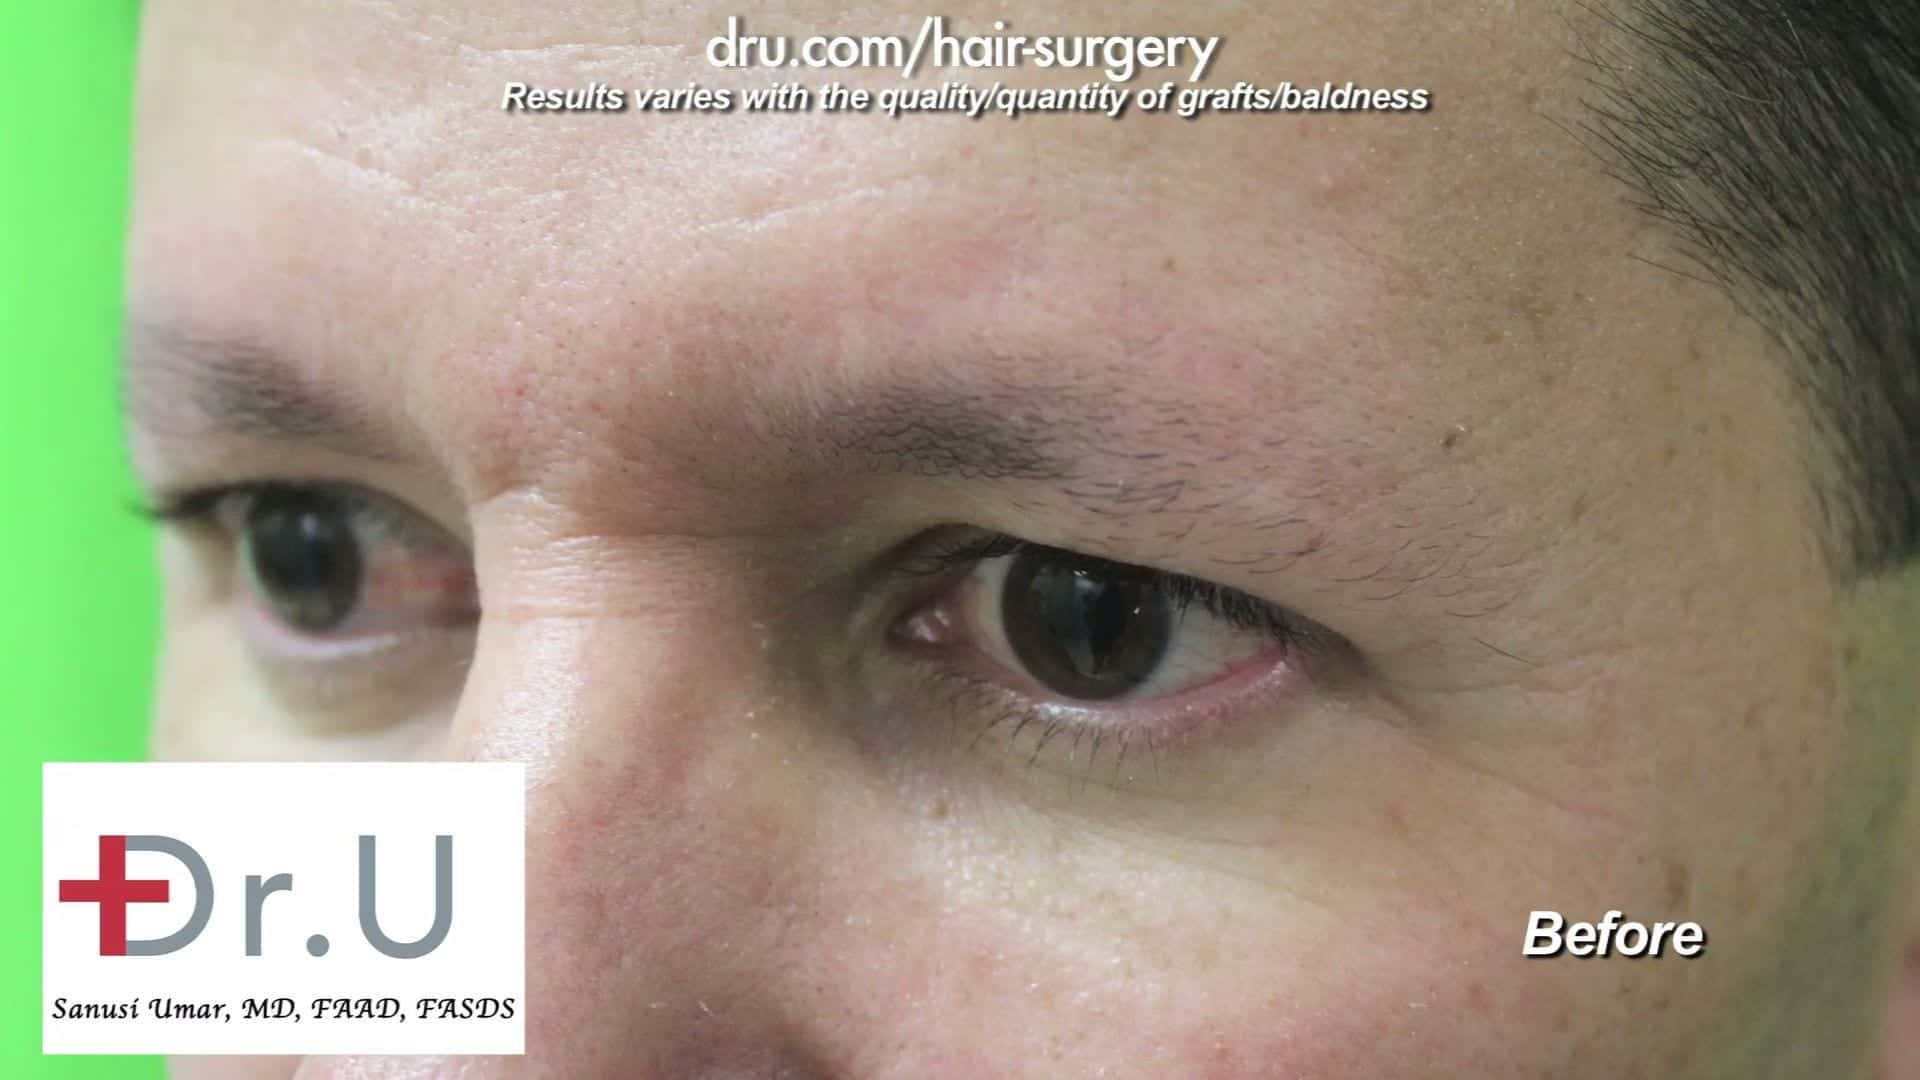 300 leg hair grafts will be transplanted for this male eyebrow restoration surgery to restore a fuller eyebrow look.